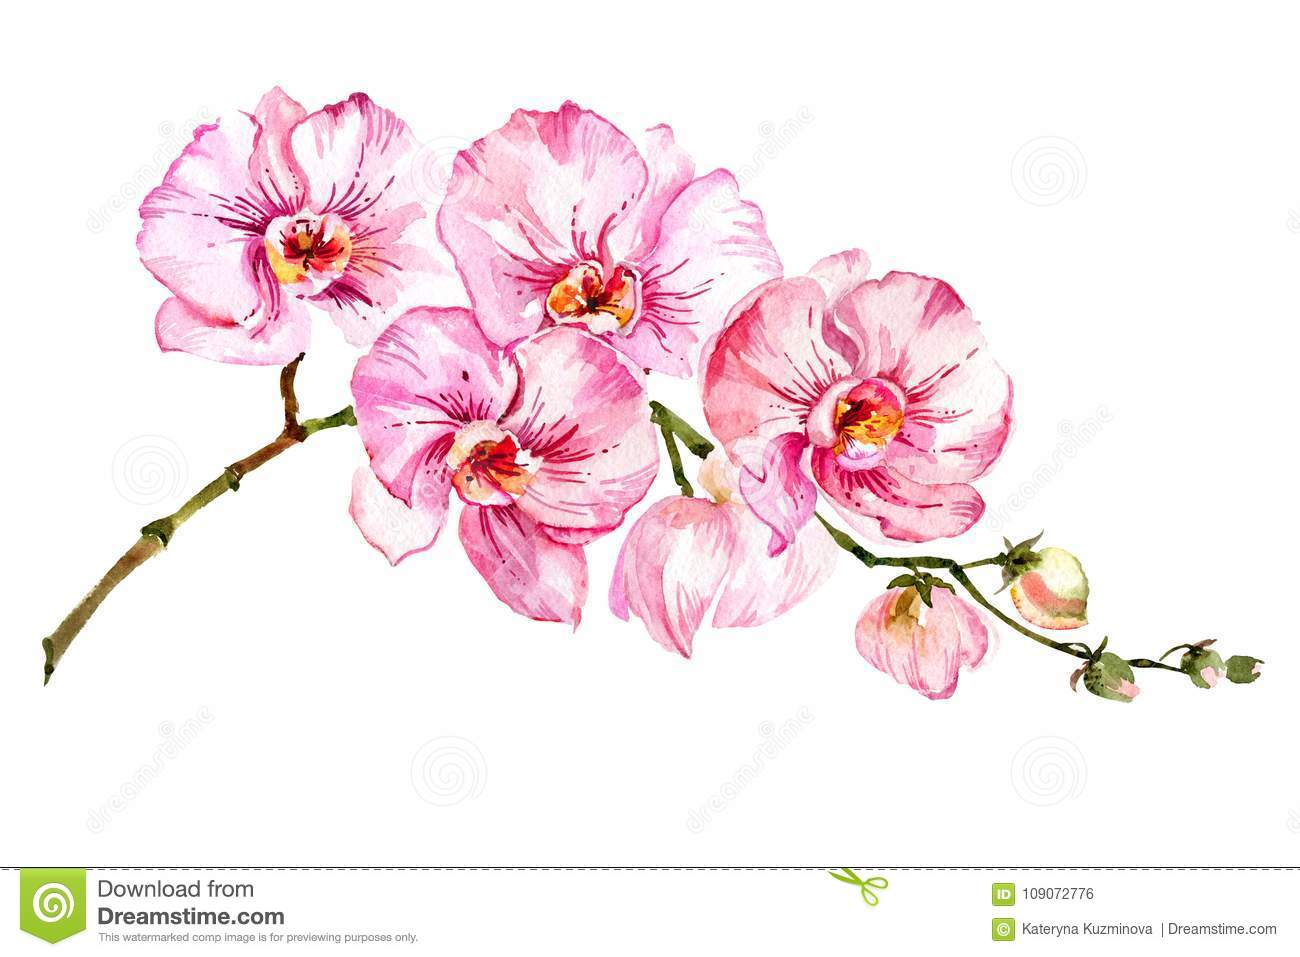 36b4ad1f4 Pink moth orchid Phalaenopsis flower on a twig. Isolated on white  background. Watercolor painting. Hand drawn.